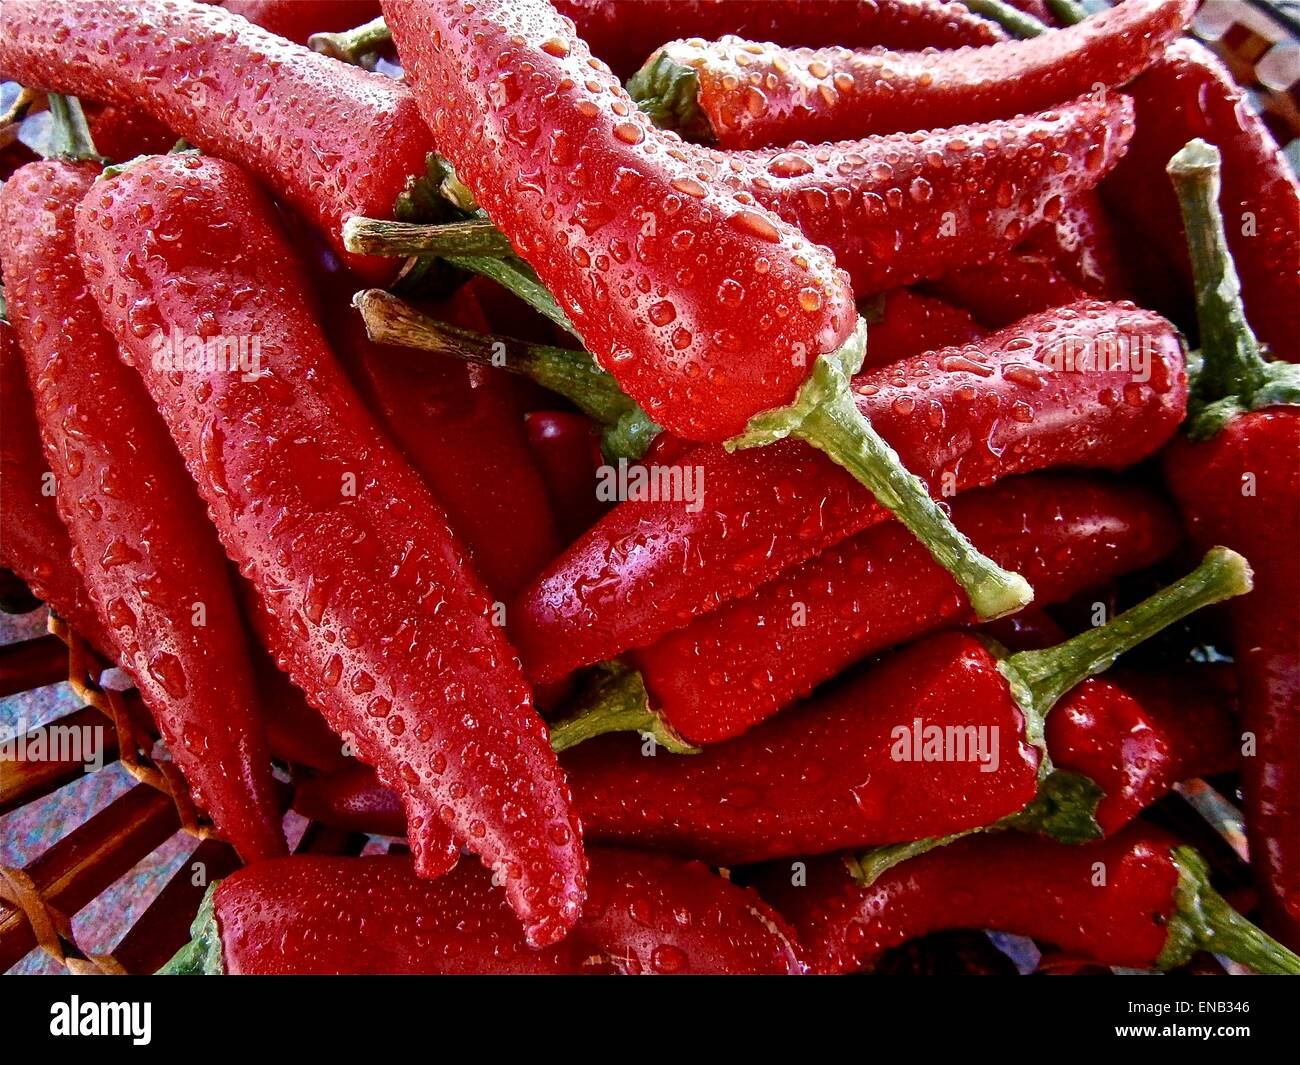 Red chili background - Stock Image